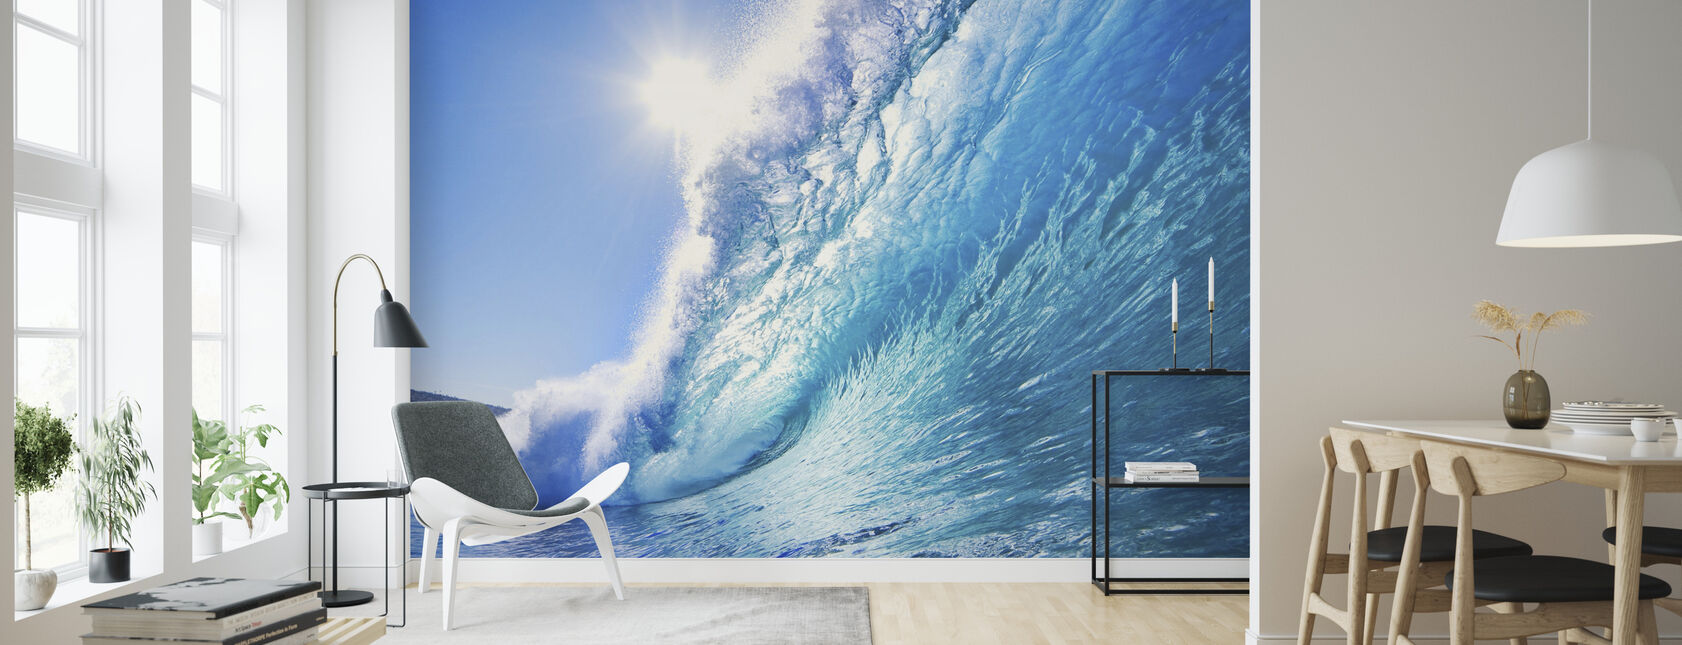 Big Blue Surfing Wave - Wallpaper - Living Room